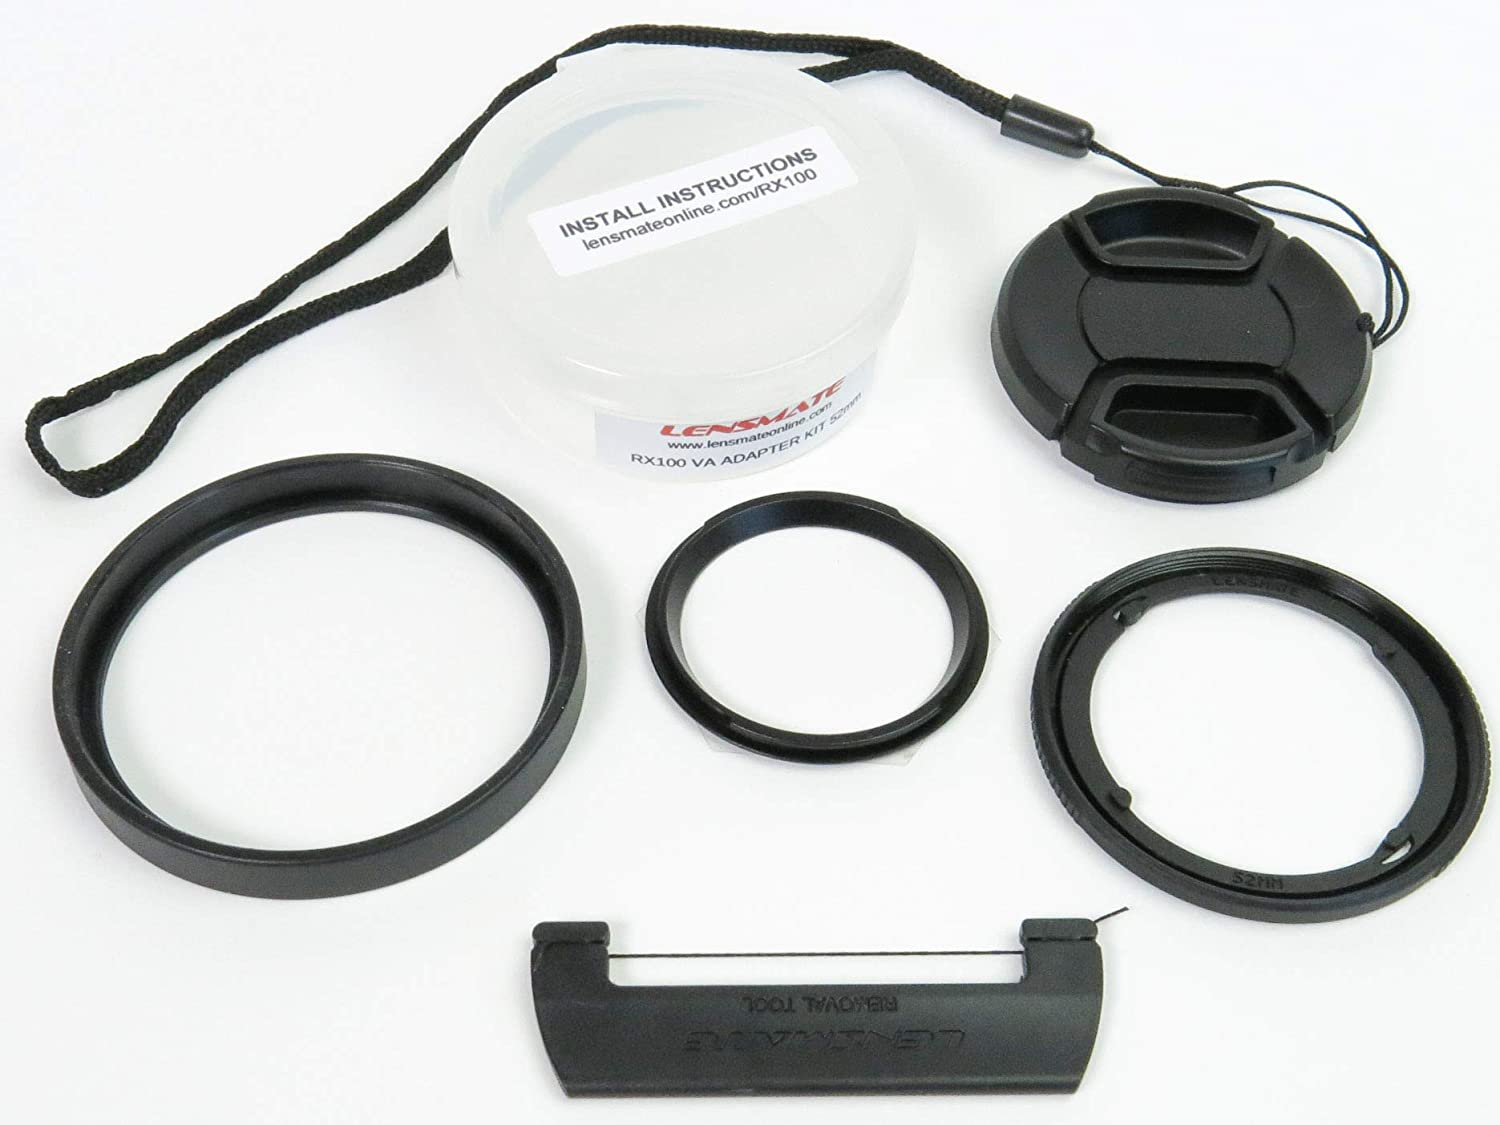 Lens//Filter Adapter Ring 52mm for Sony DSC-RX100 RX100 II III IV Camera